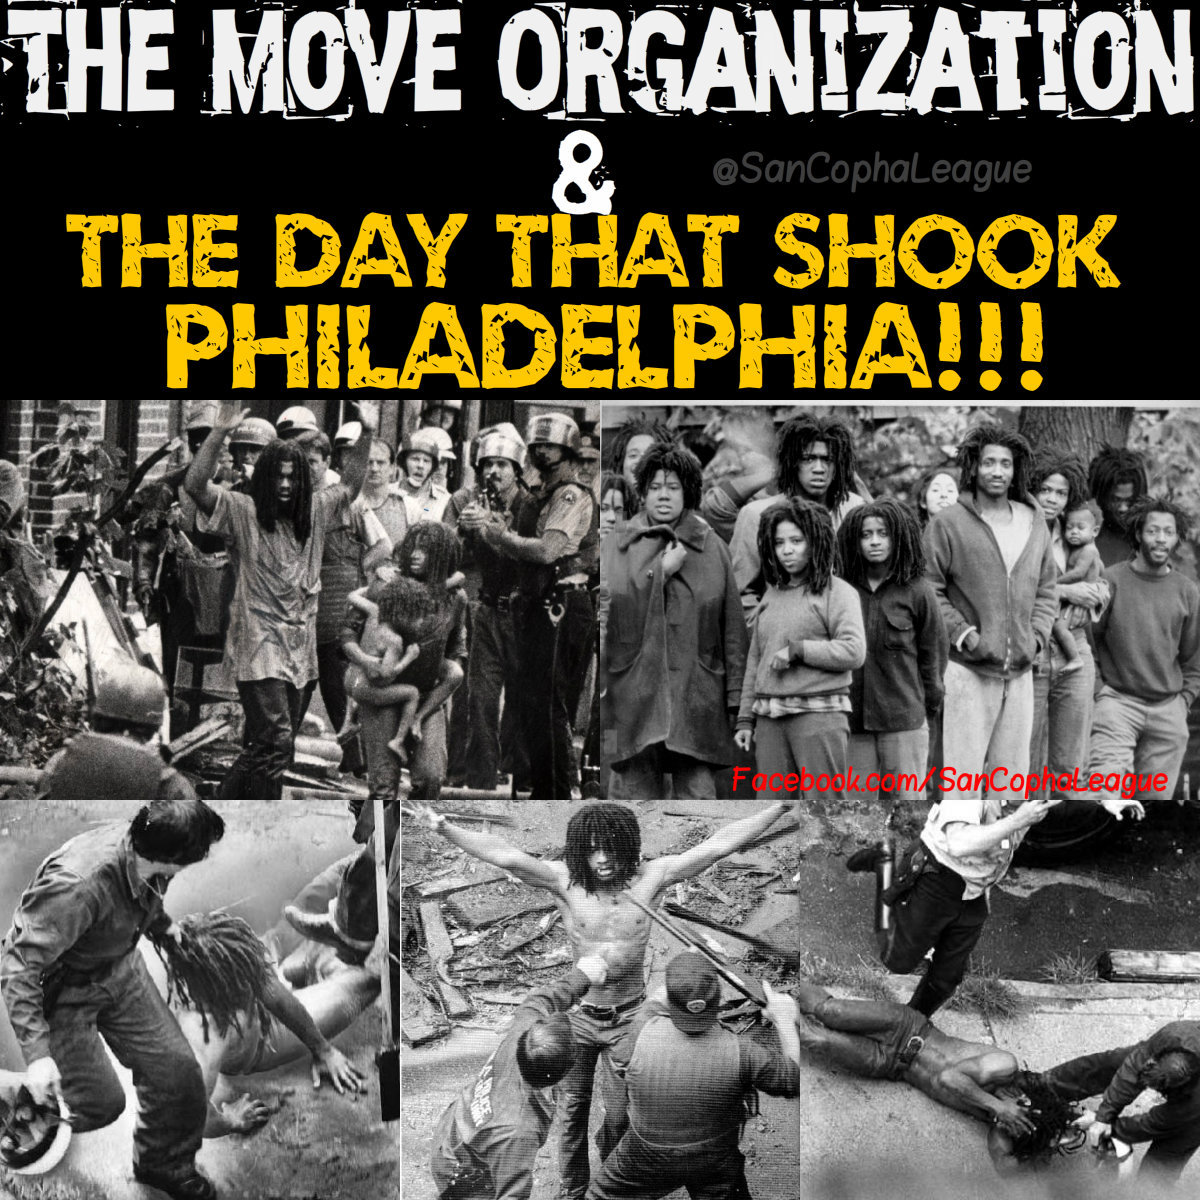 The Move Organization is a Black Liberation group from Philadelphia started by John Africa in 1972. According to the group, the word MOVE is not an acronym. It means exactly what it says: MOVE, work, generate, be active. Their philosophy is everything that's alive moves and If it didn't, it would be stagnant, dead. Movement is their principle of Life.  Self Defense is also one of their principles of life and On May 13, 1985 they definitely showed that. The confrontation began when police came to their house over 100 strong with guns aimed and demanded the MOVE members come outside. Still angry from the 1978 confrontation with police, which resulted in 9 MOVE members being sentenced to 30 to 100 years in prison, they refused. The police then began throwing tear gas and opening fire at the house. The MOVE house had been built as a bunker and they began shooting back. After hours of shooting, the Police called for a helicopter and dropped a BOMB on the house. Yup, you read right. The cops dropped a bomb in the midd